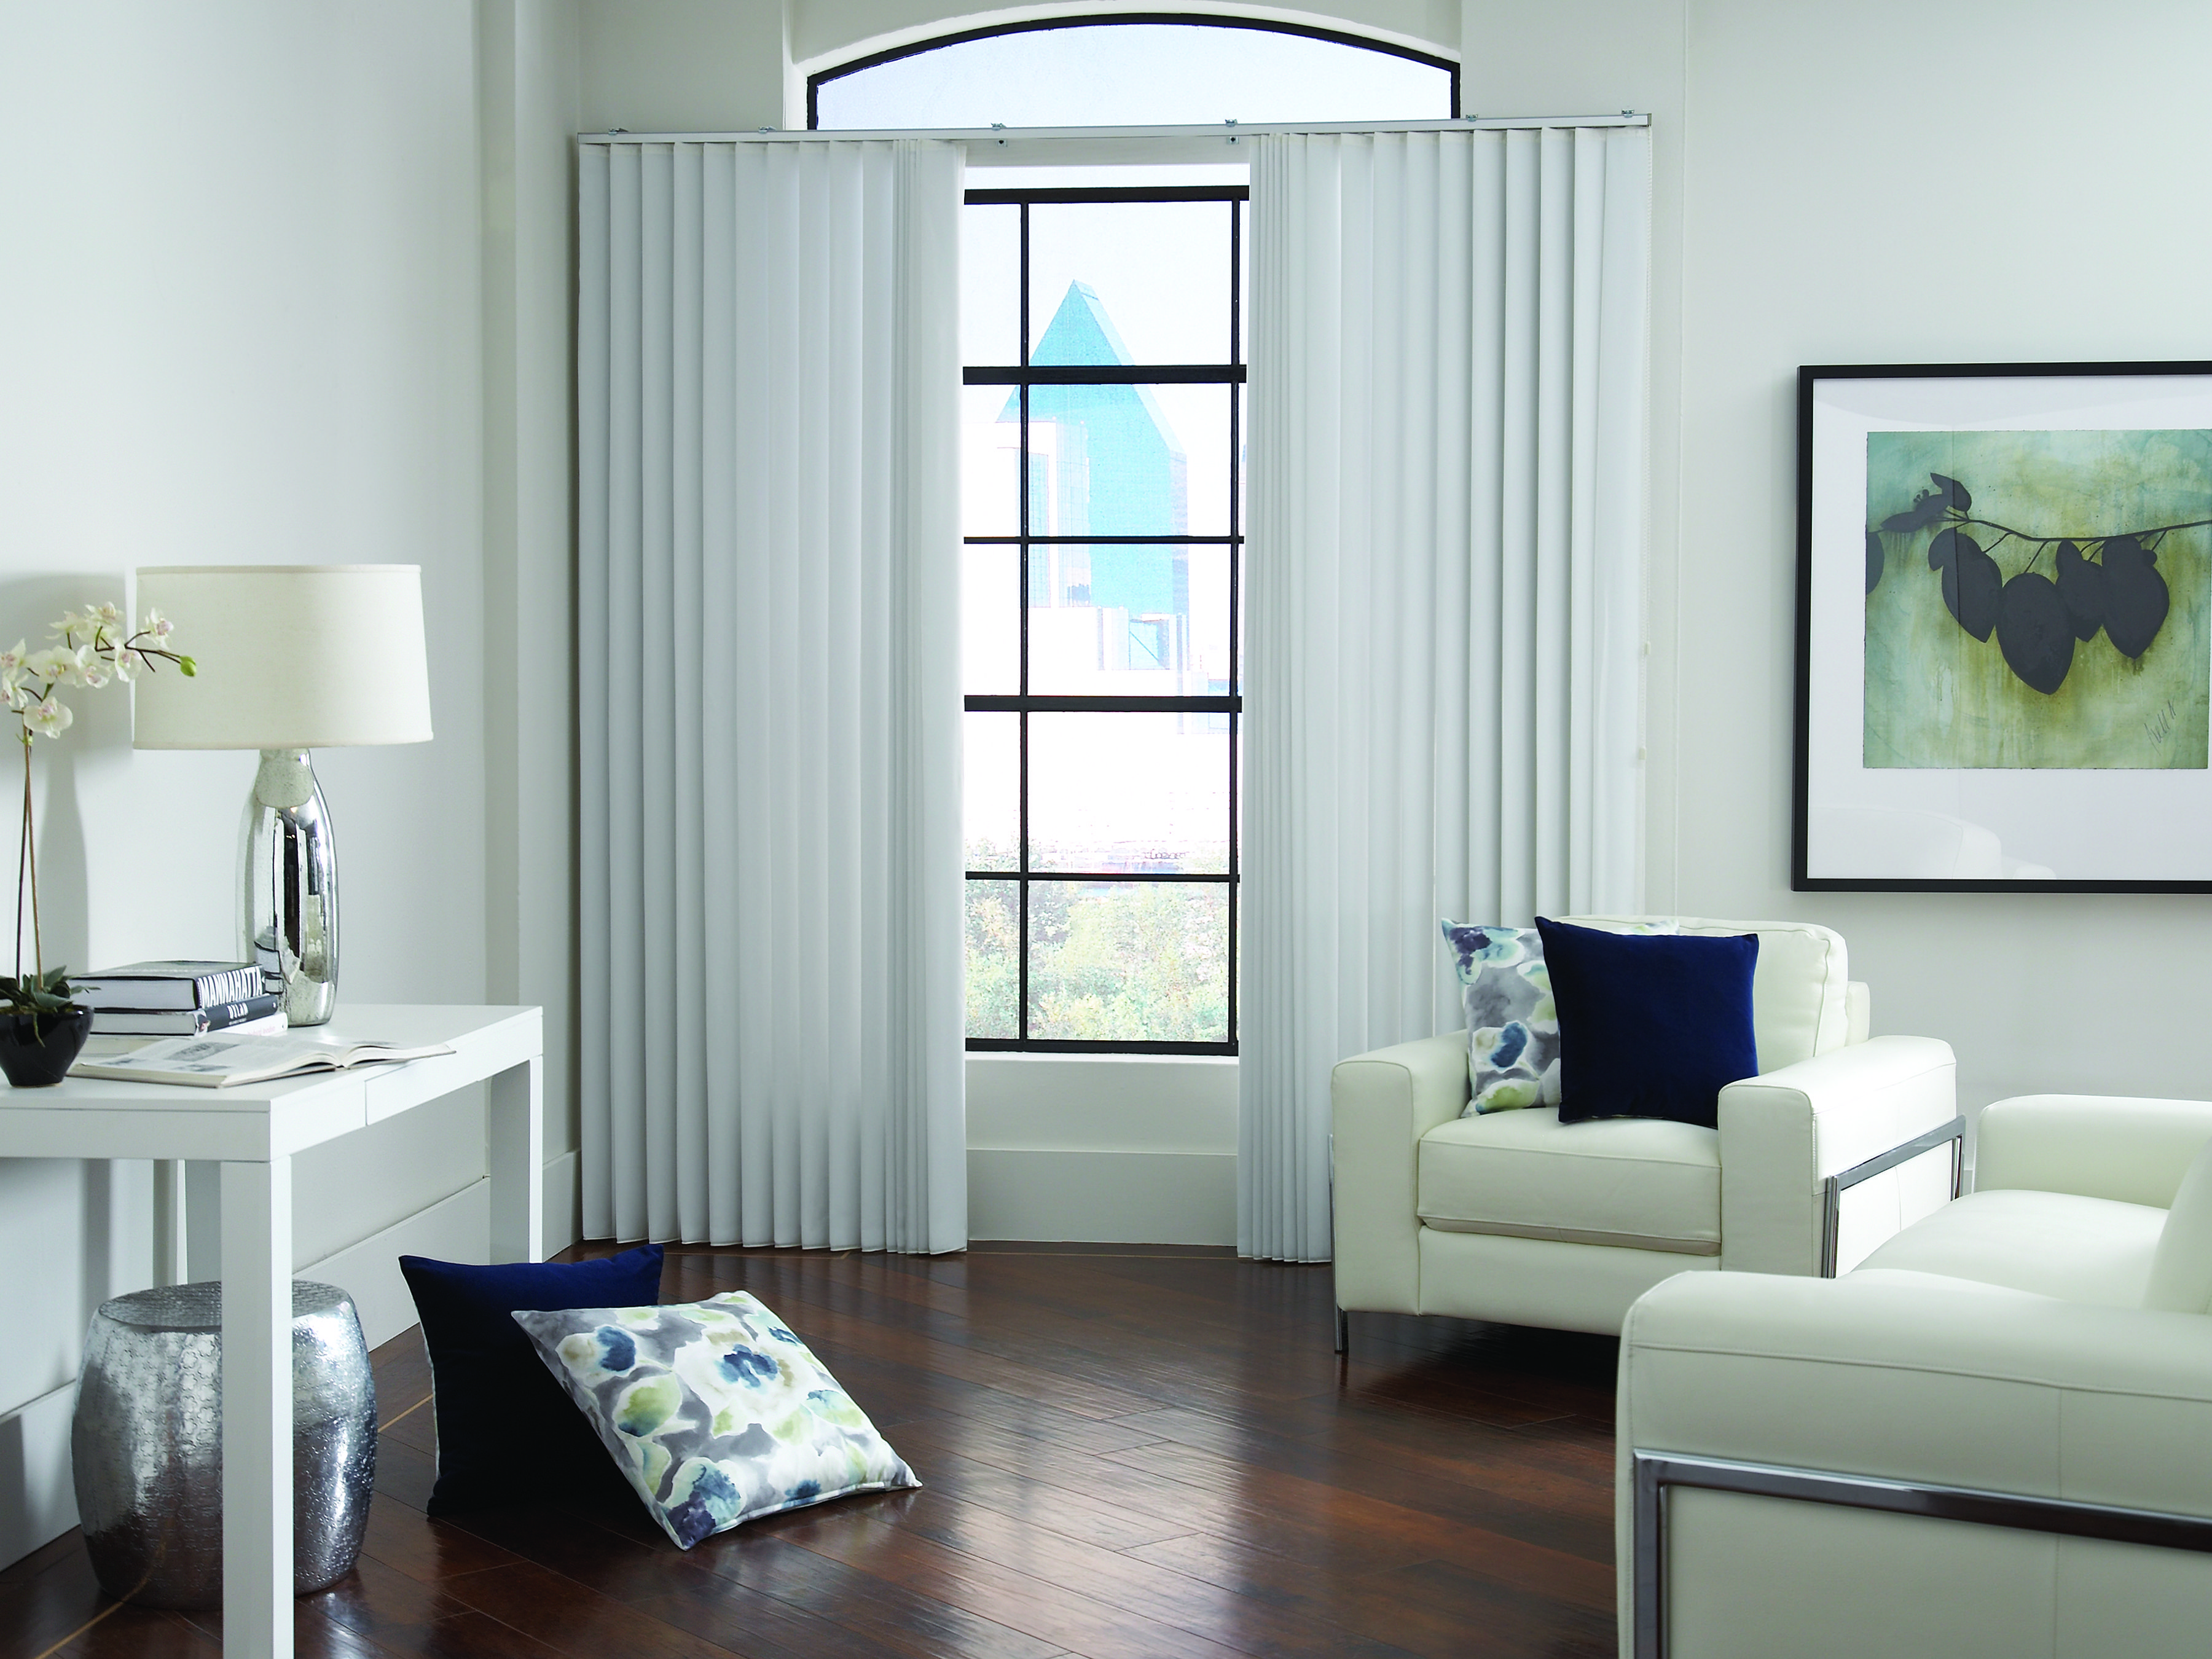 Vertical Blinds In A Modern Living Room Contemporary Window Treatments Vertical Blinds Window Treatments Living Room